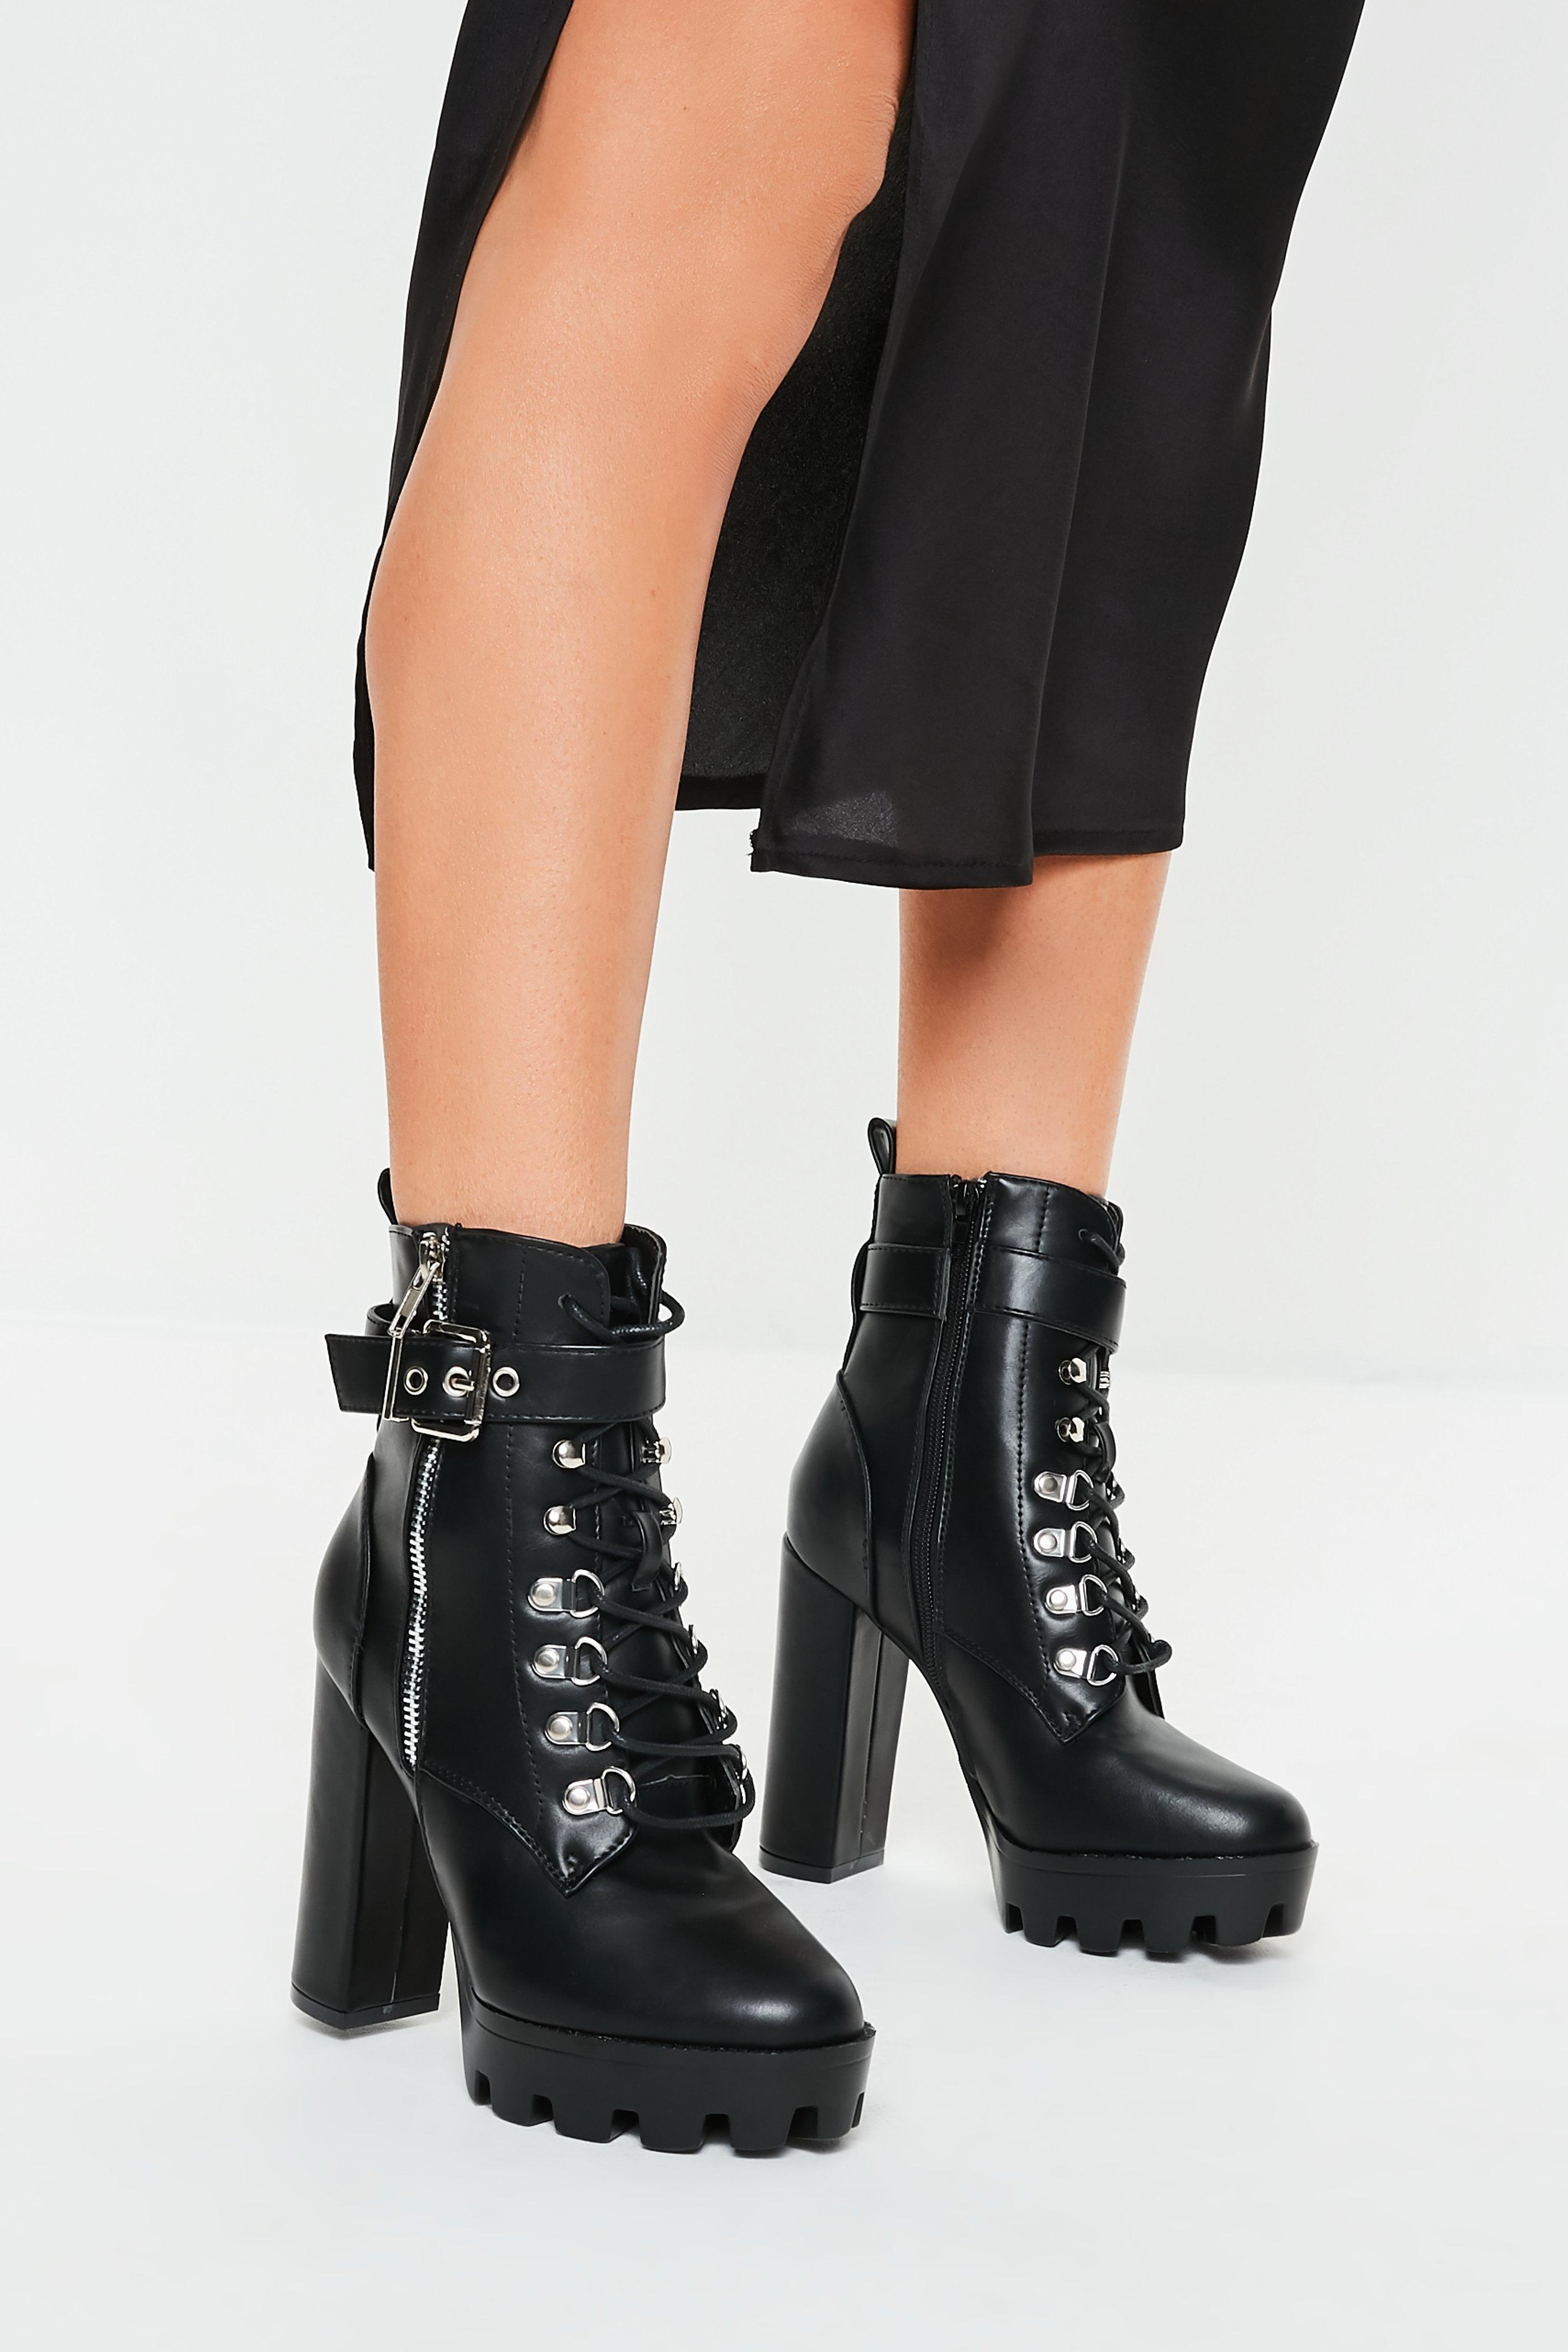 88a409d3a43a4 Ankle Boots | Women's Ankle Boots - Missguided